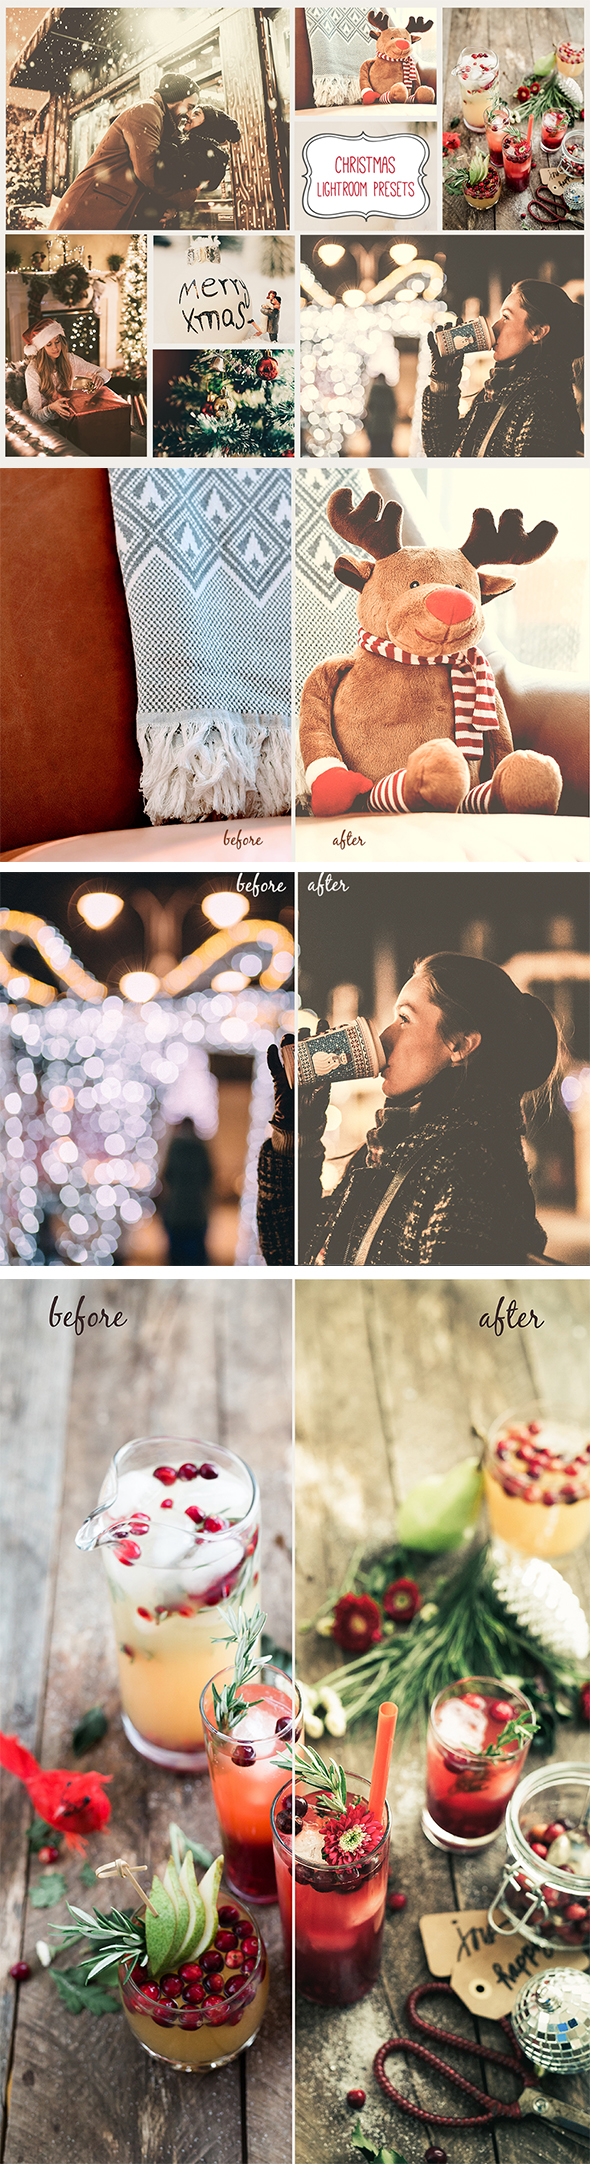 GraphicRiver 20 Winter Christmas Lightroom Presets 21103193